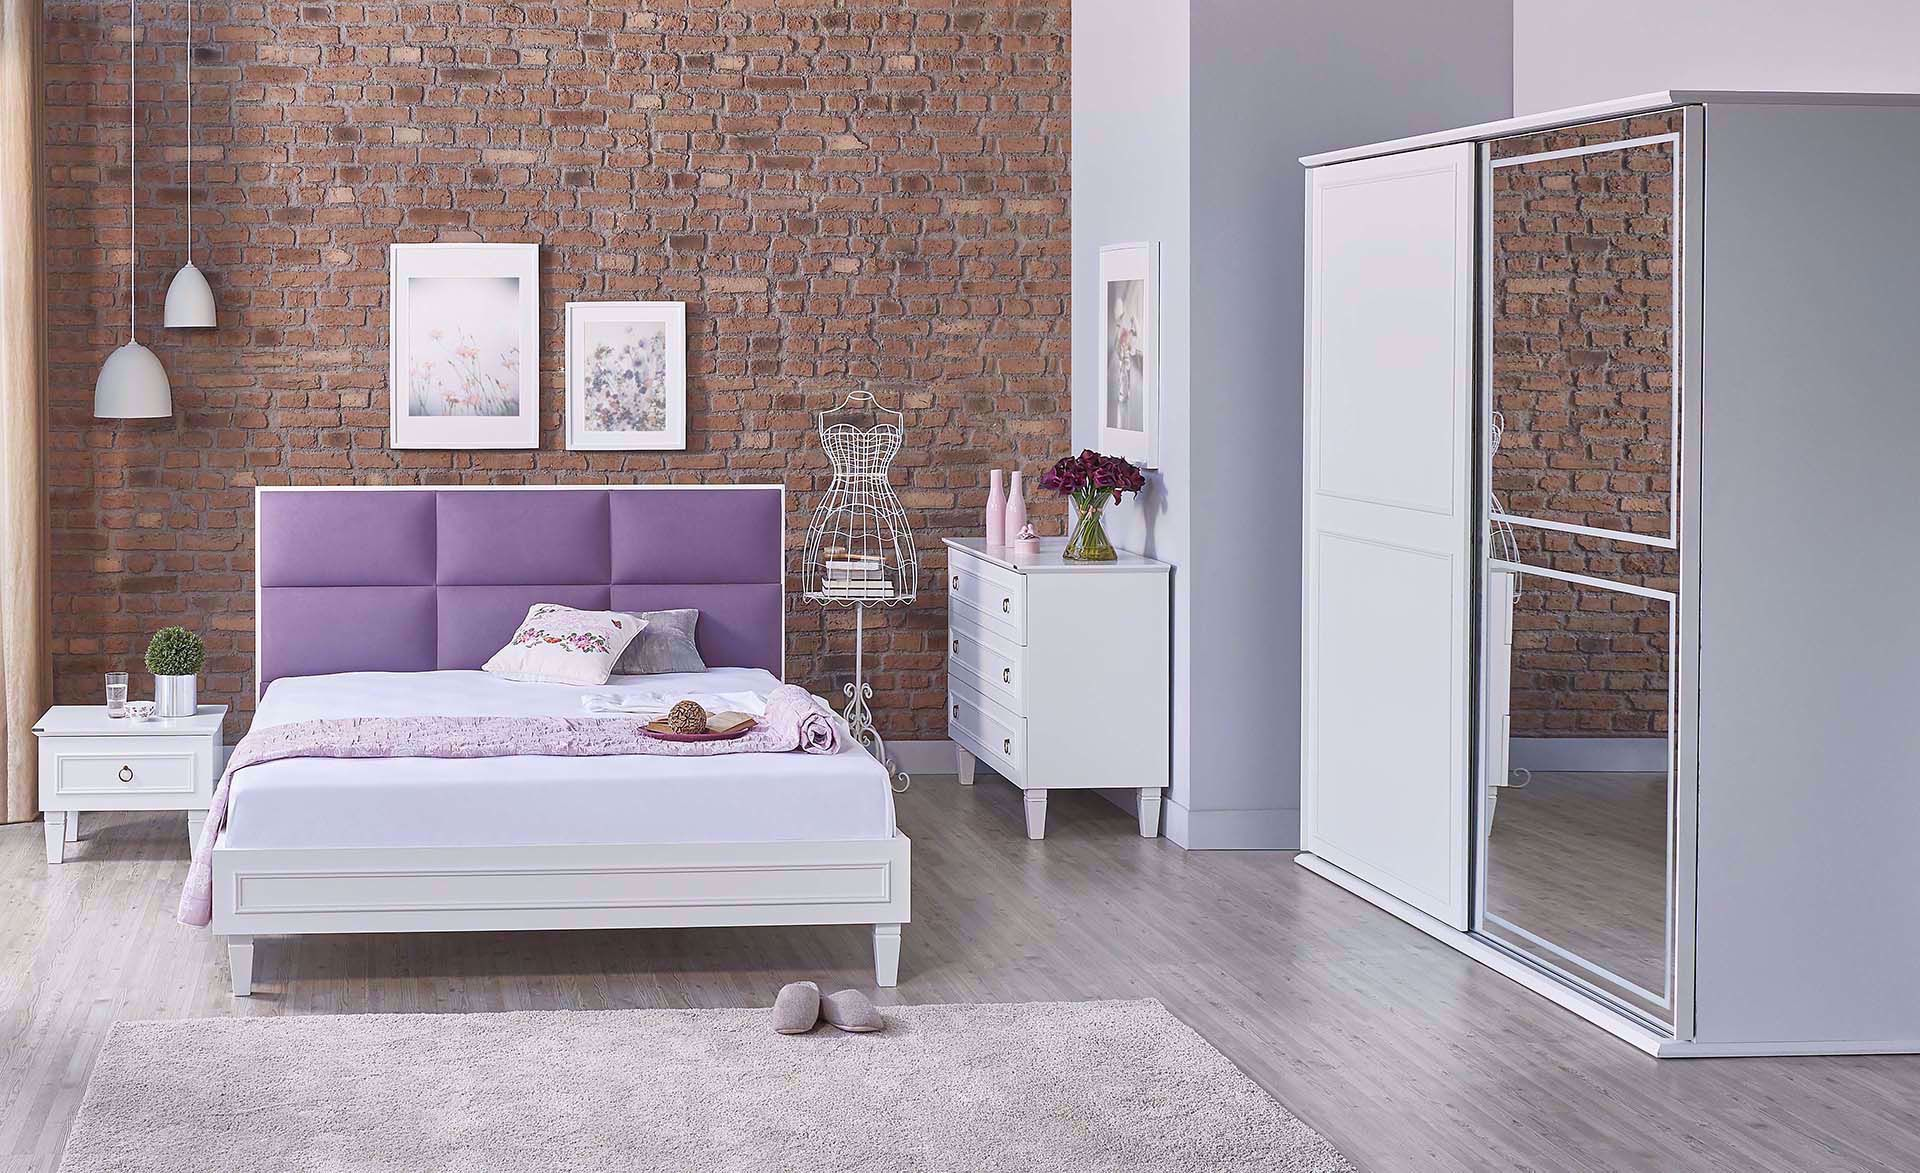 Cara Bedstead (with Base) 160*200cm (Incl. Headboard) (Purple)